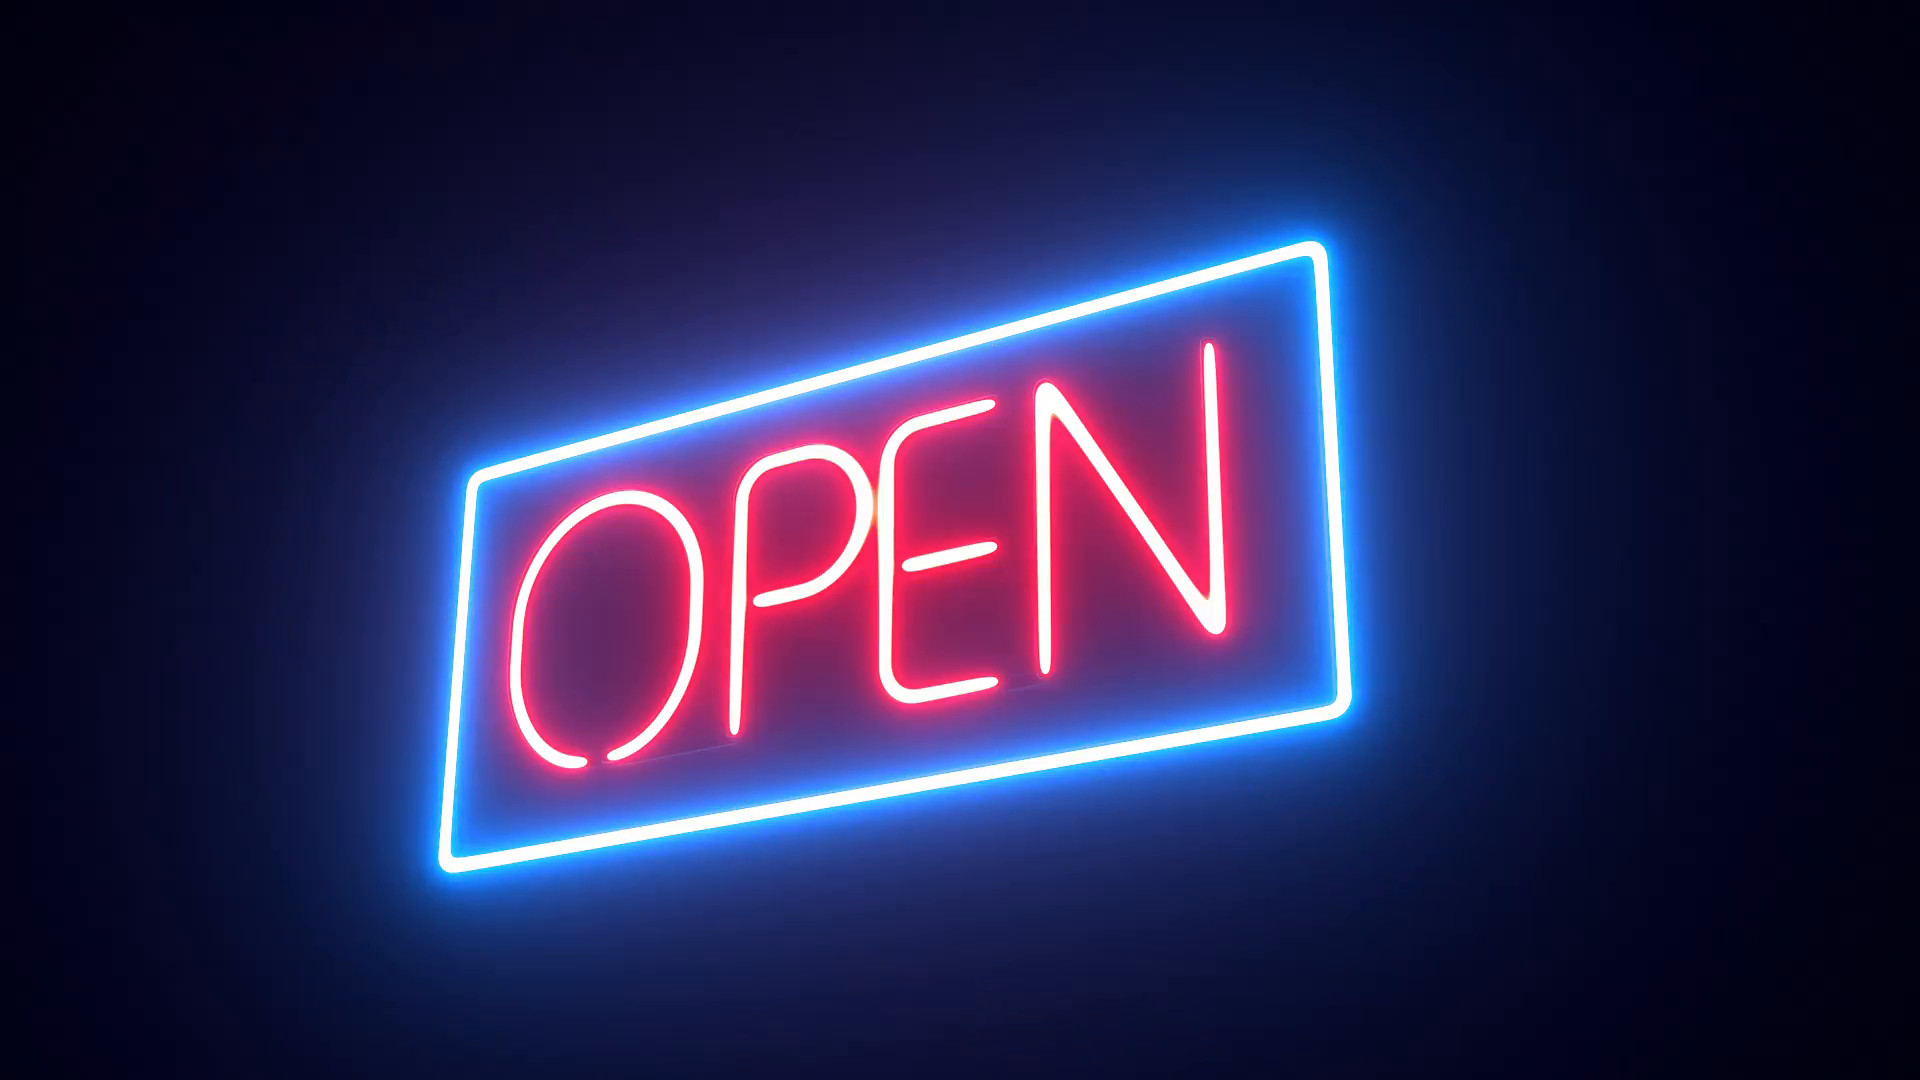 open neon sign wallpaper 66623